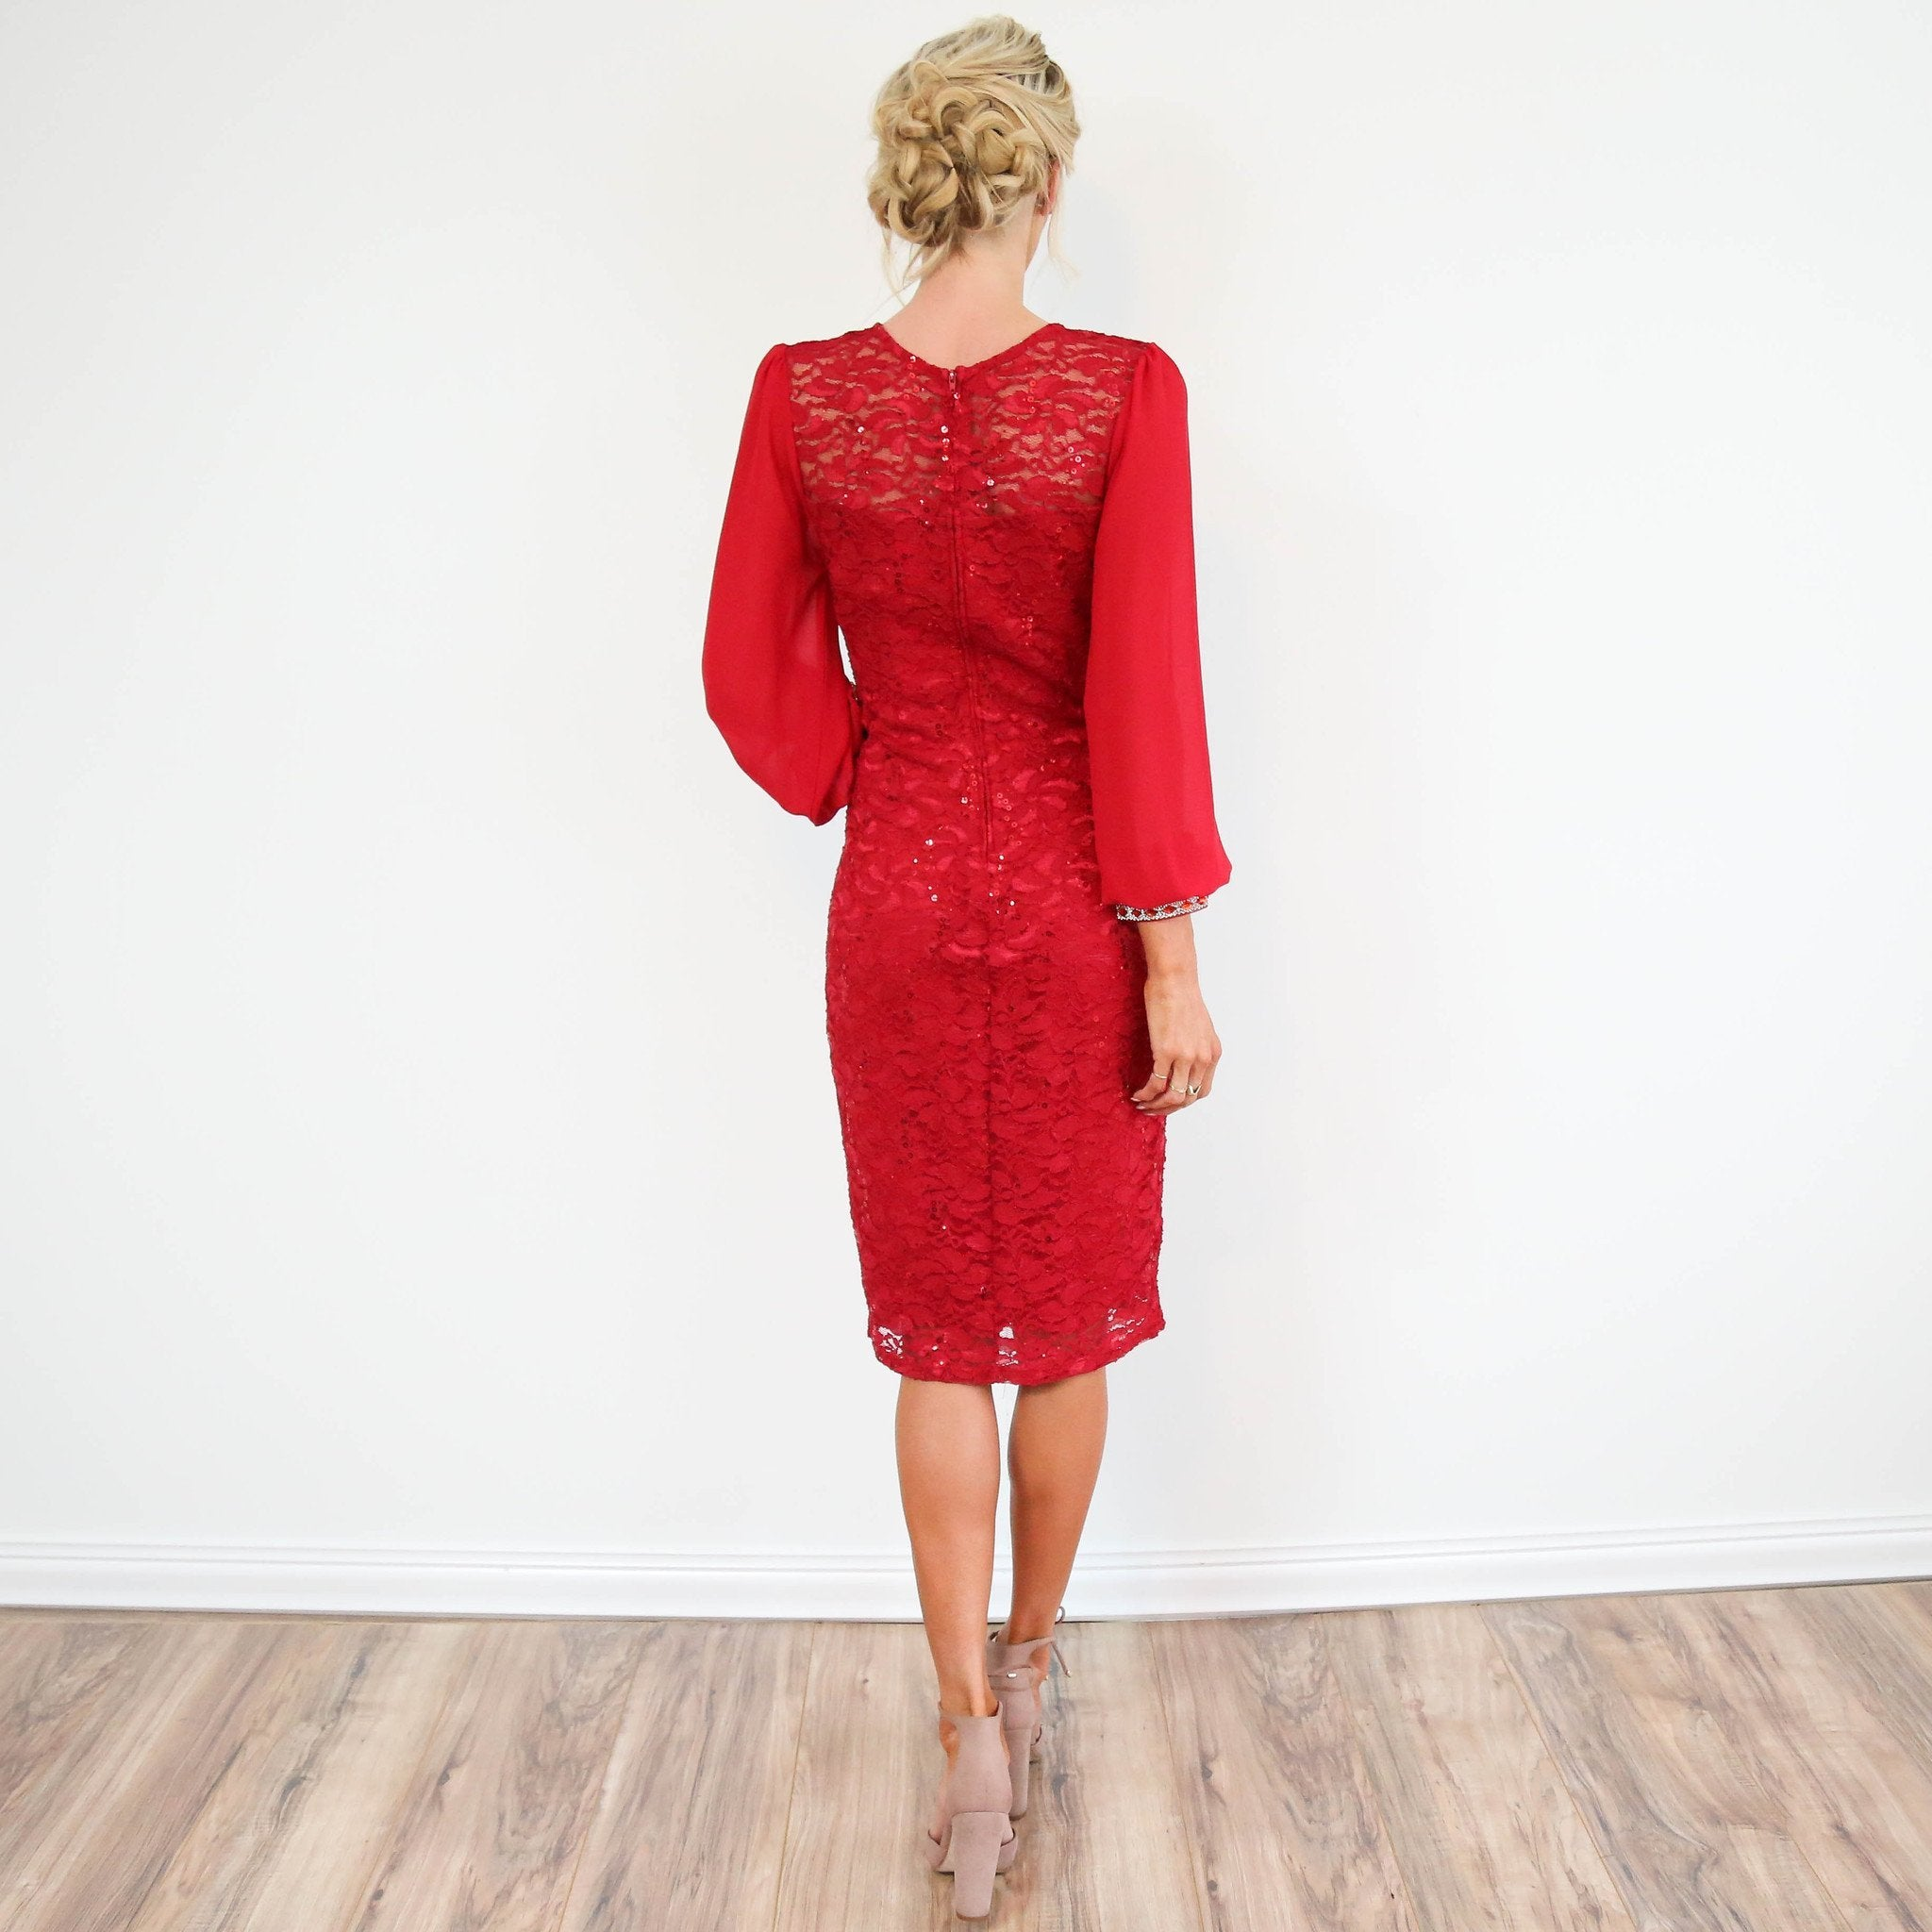 Adelle Dress in Red